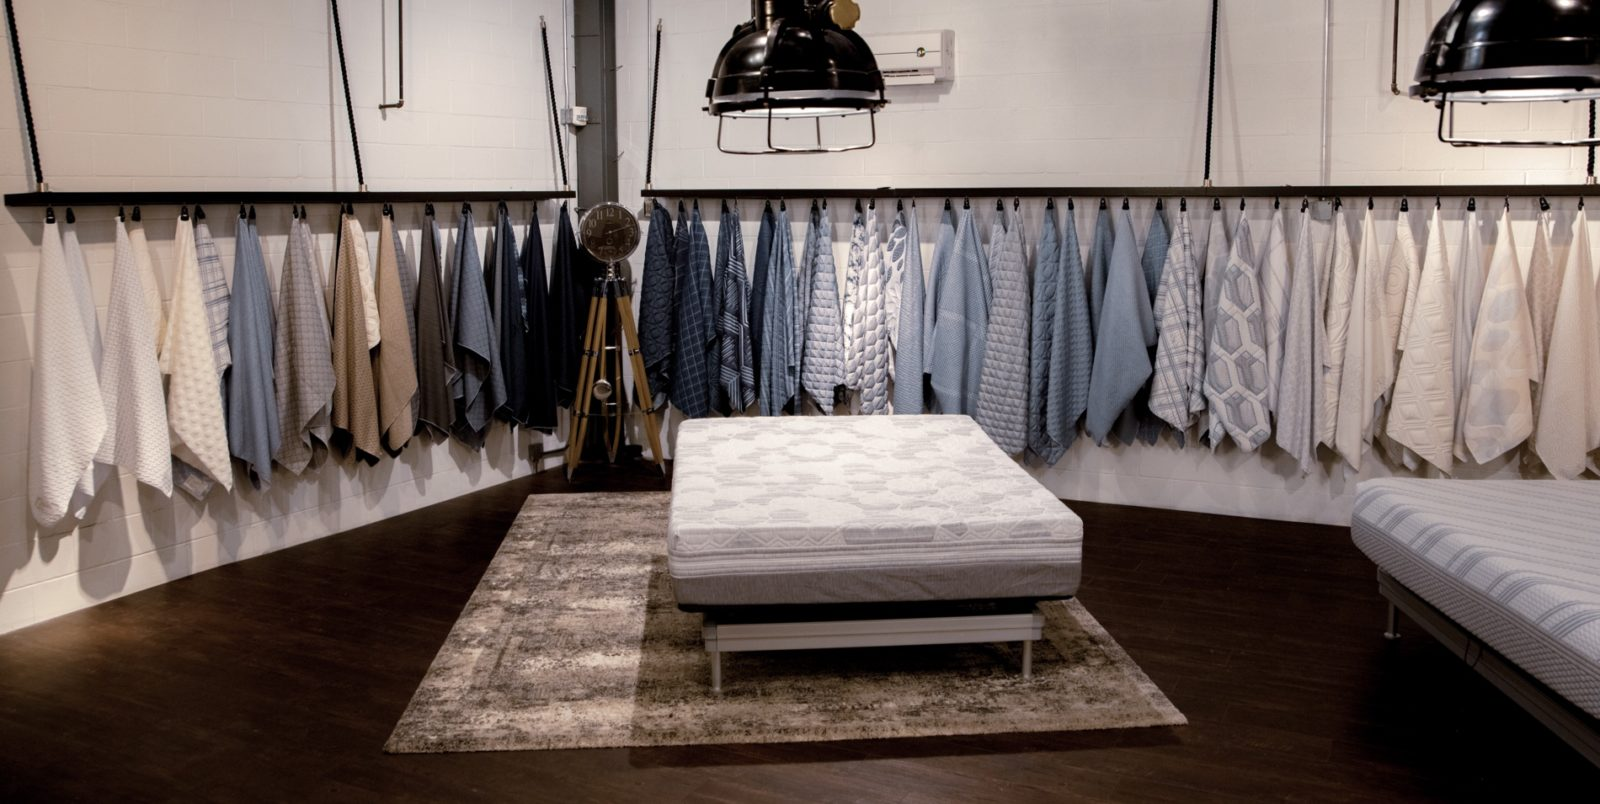 Fabric showroom with a mattress cover in the middle